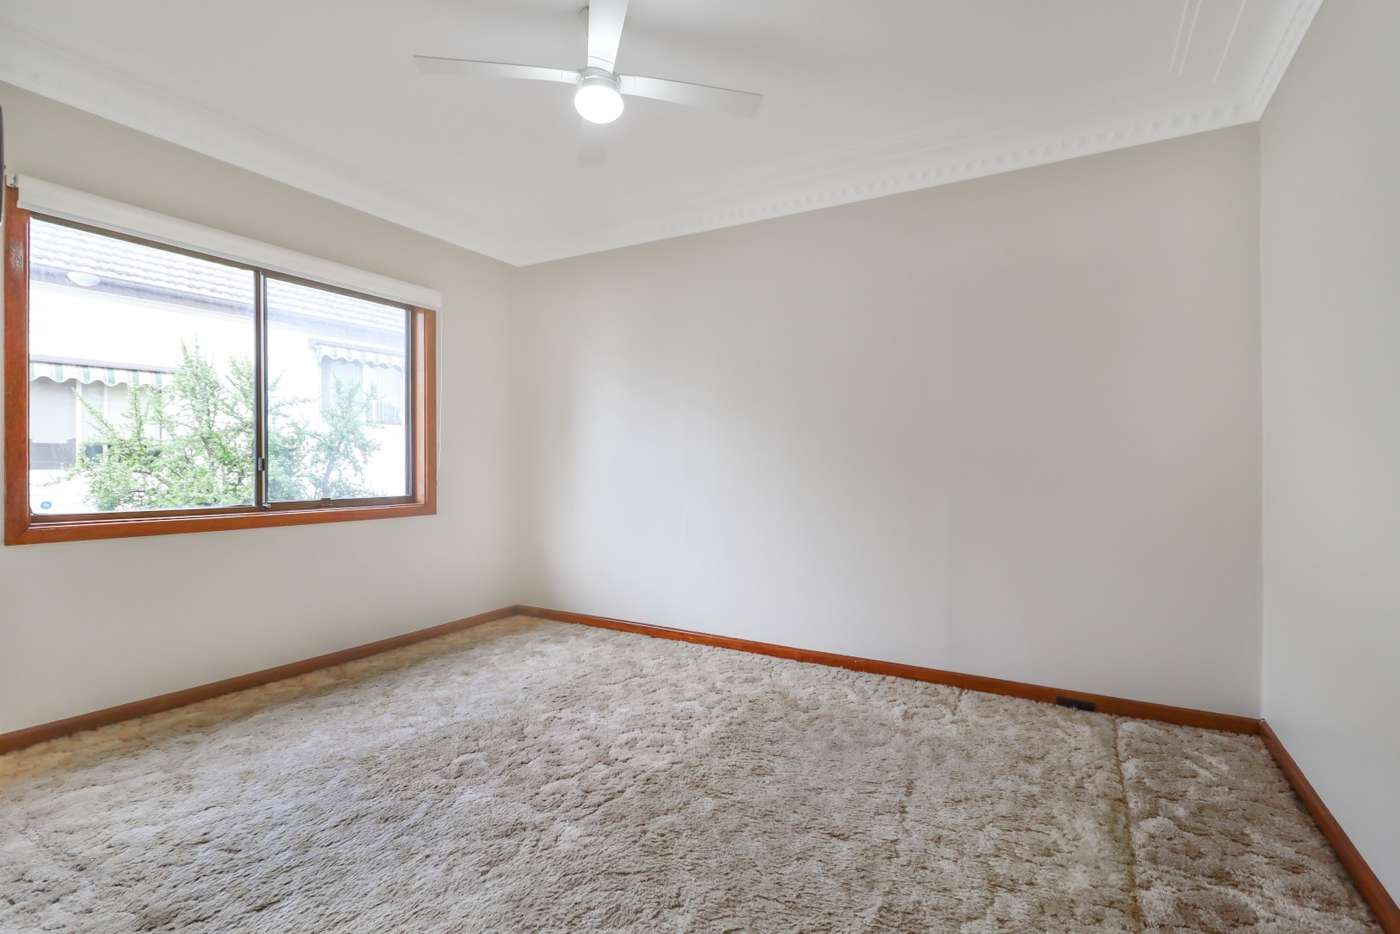 Sixth view of Homely house listing, 14-16 Church Road, Yagoona NSW 2199